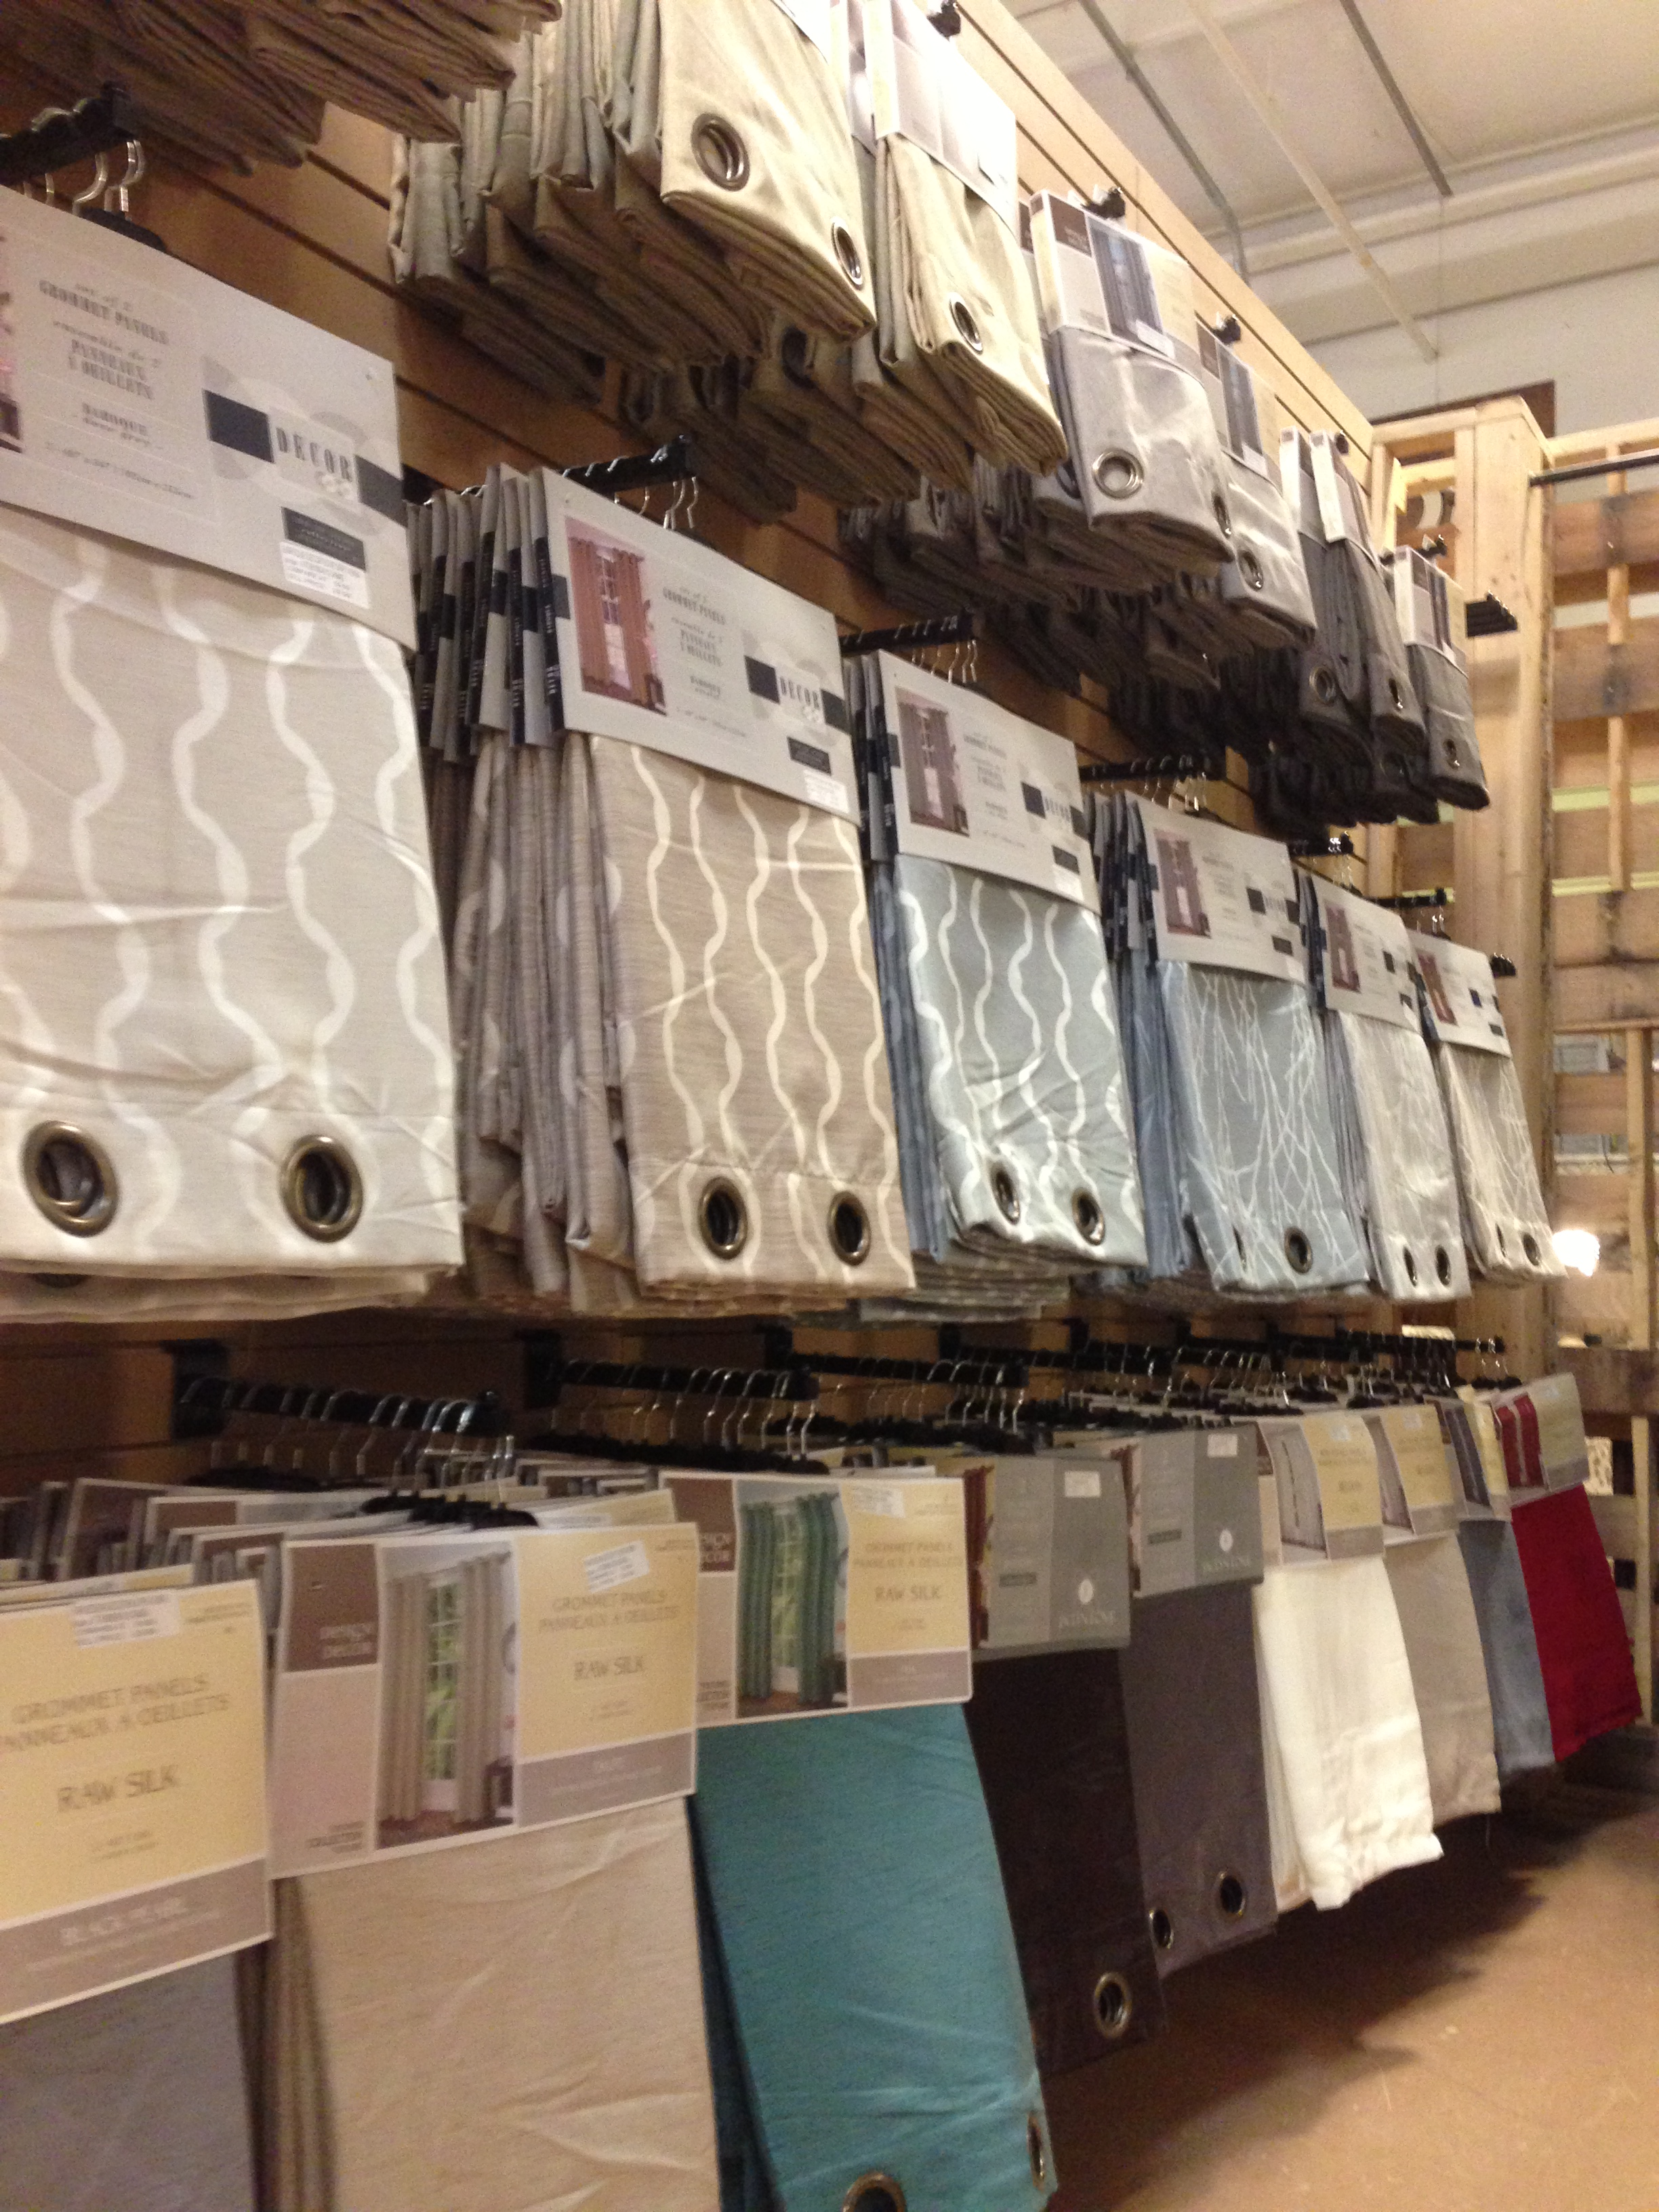 Design Trends   NEW  Window Treatments at Woodstock Furniture Outlet. Woodstock Furniture Outlet   Brand Name Interiors at Outlet Prices